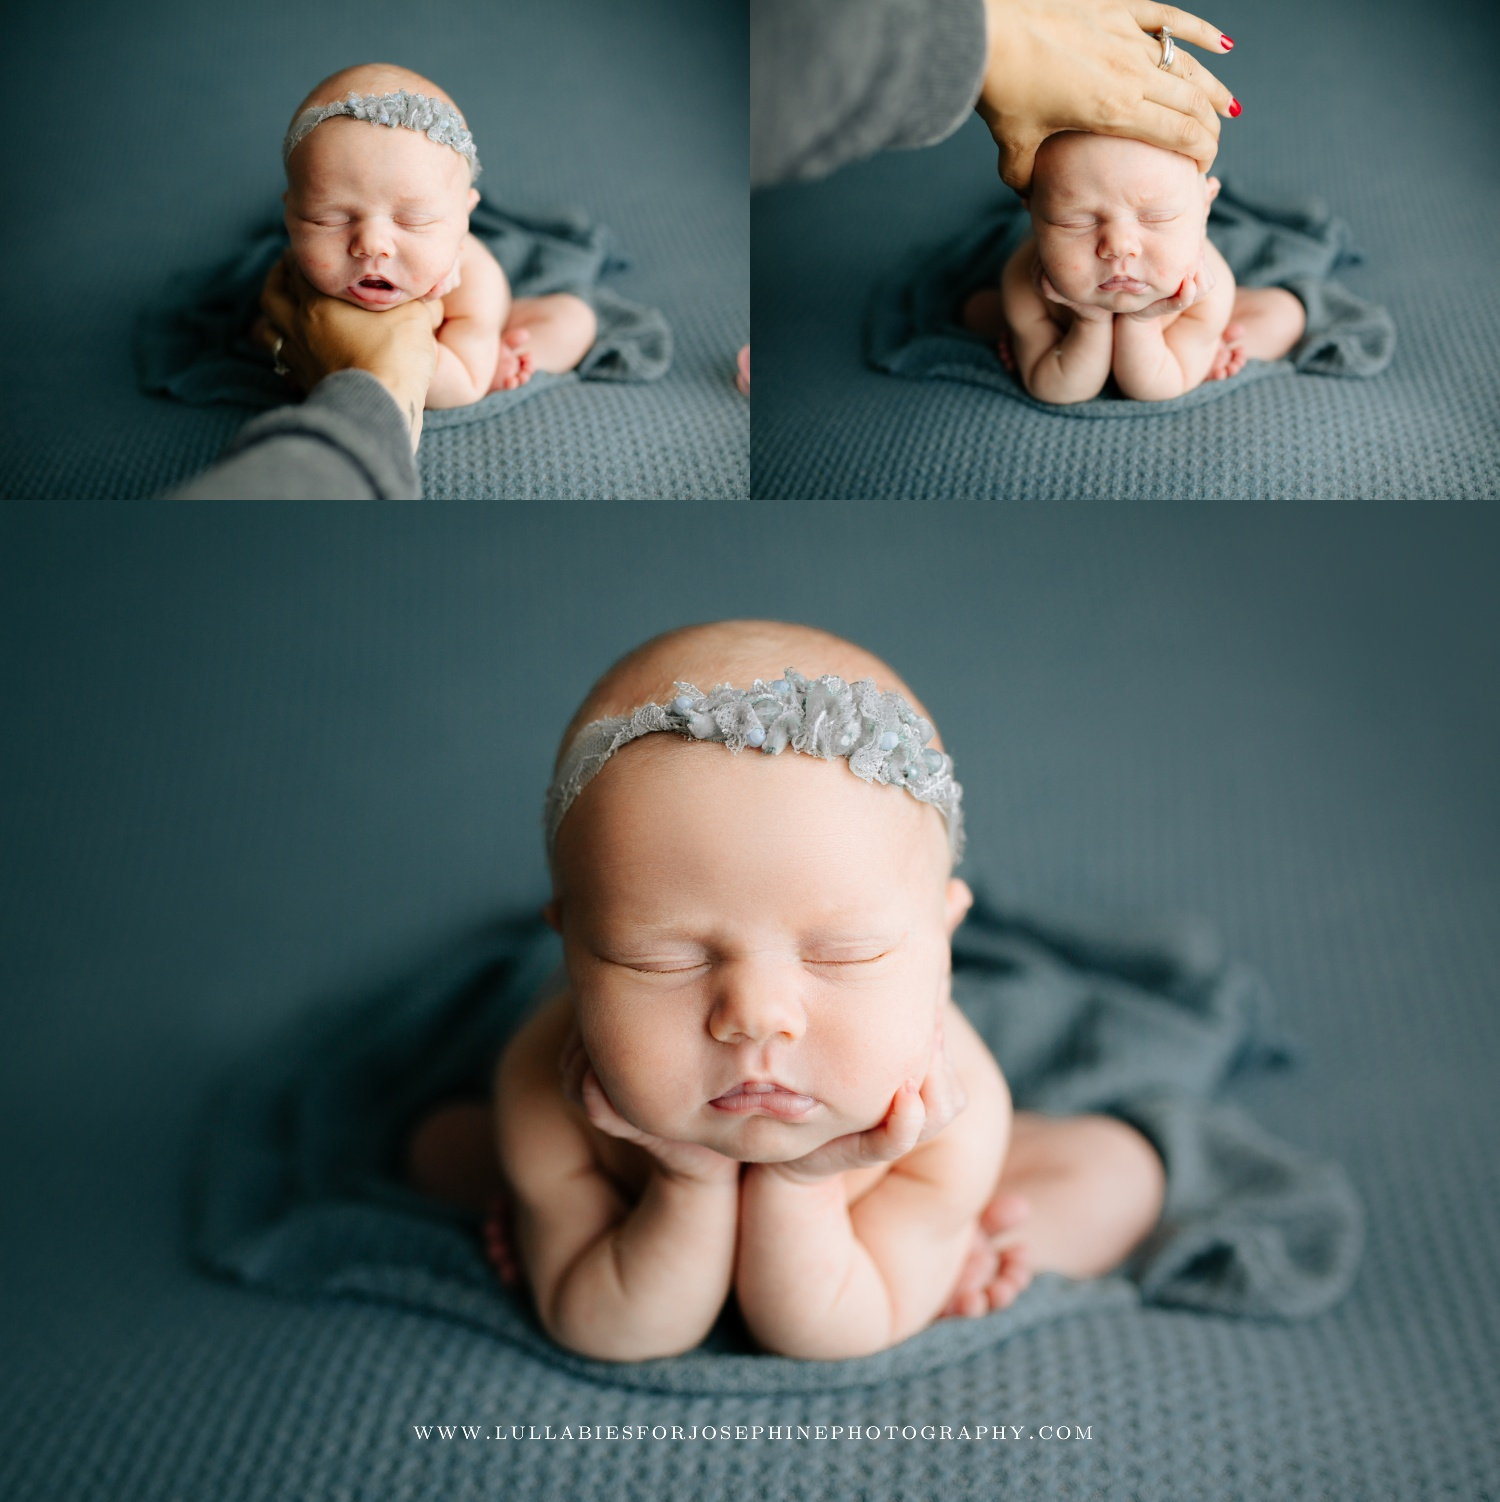 Wayne Newborn Photographer safety training experience best baby photographer composite image